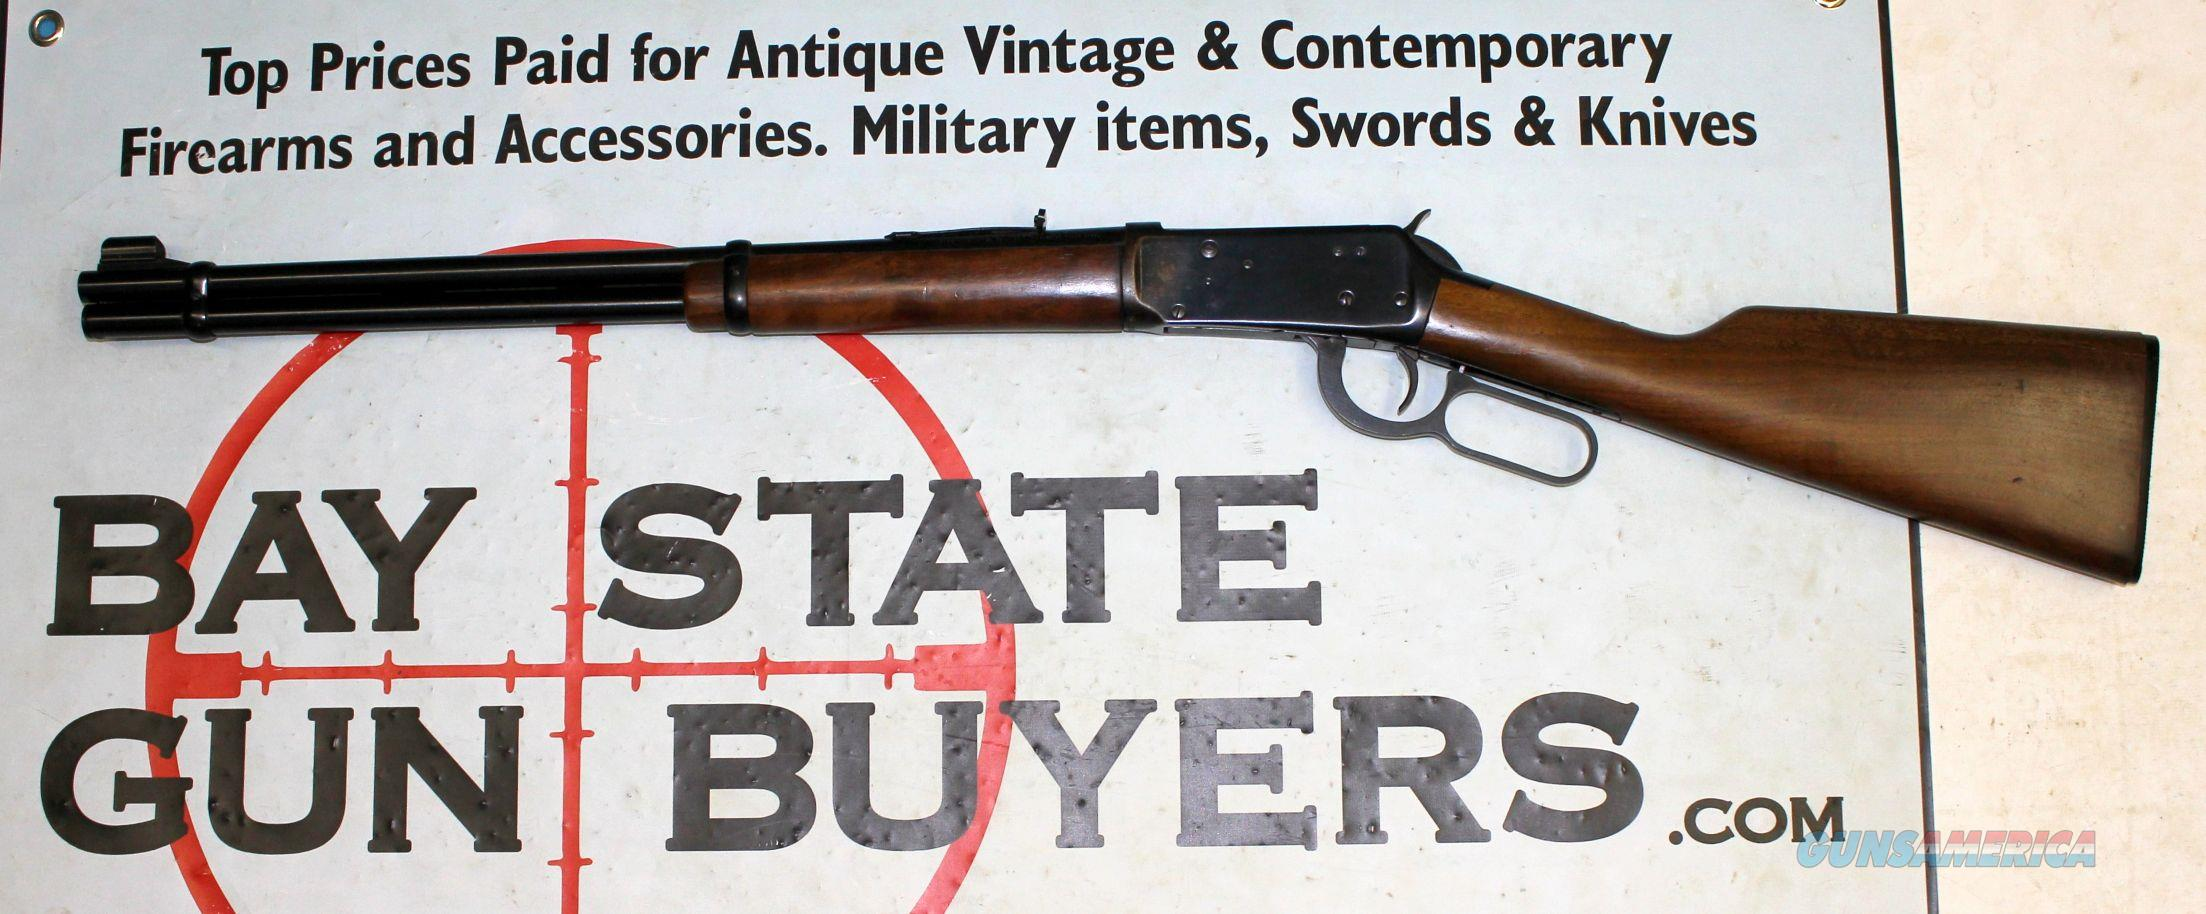 Winchester Model 94 lever action rifle 30-30 Win 1972 manufacture  Guns > Rifles > Winchester Rifles - Modern Lever > Model 94 > Post-64